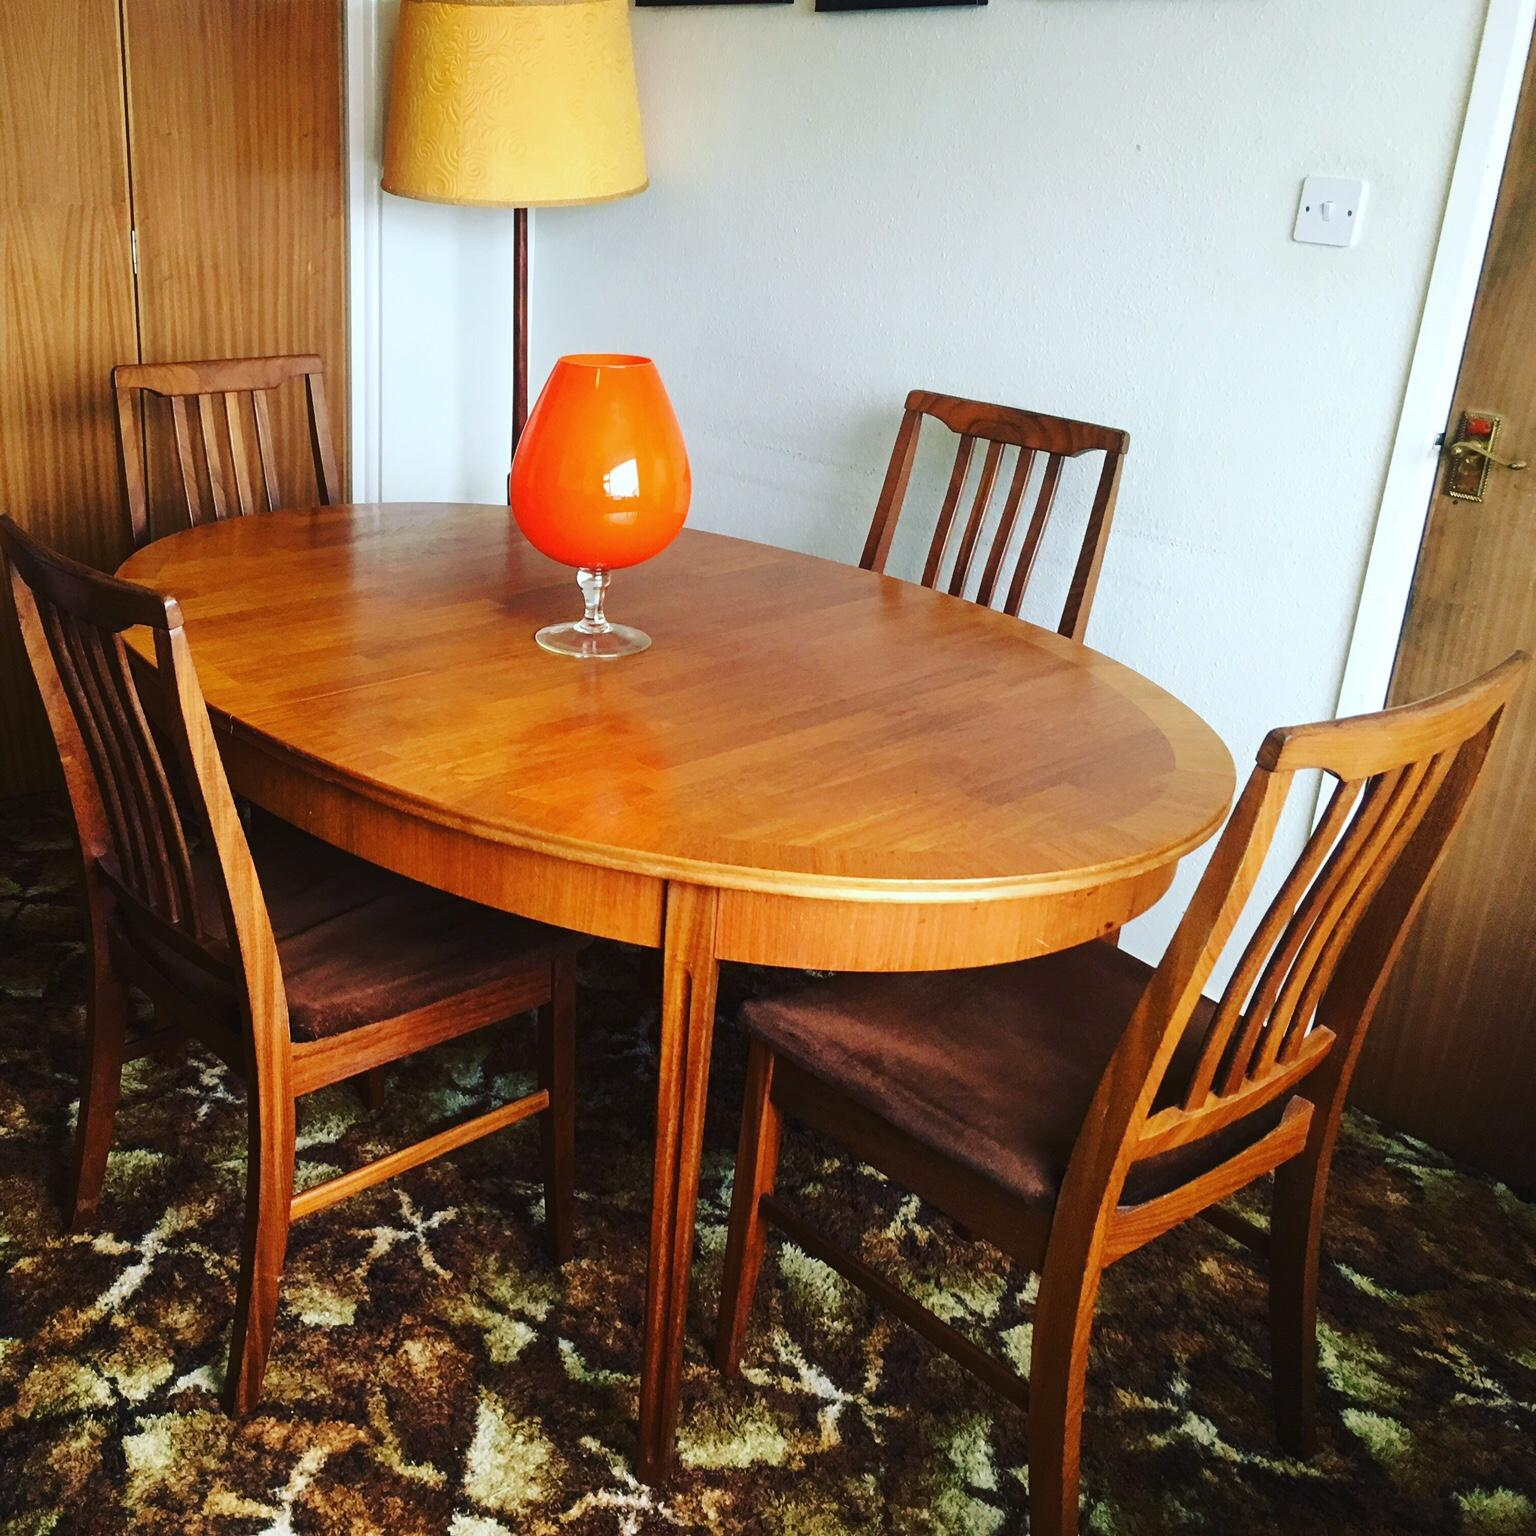 Teak Dining Room Chairs Vintage Retro Teak Dining Table Chairs